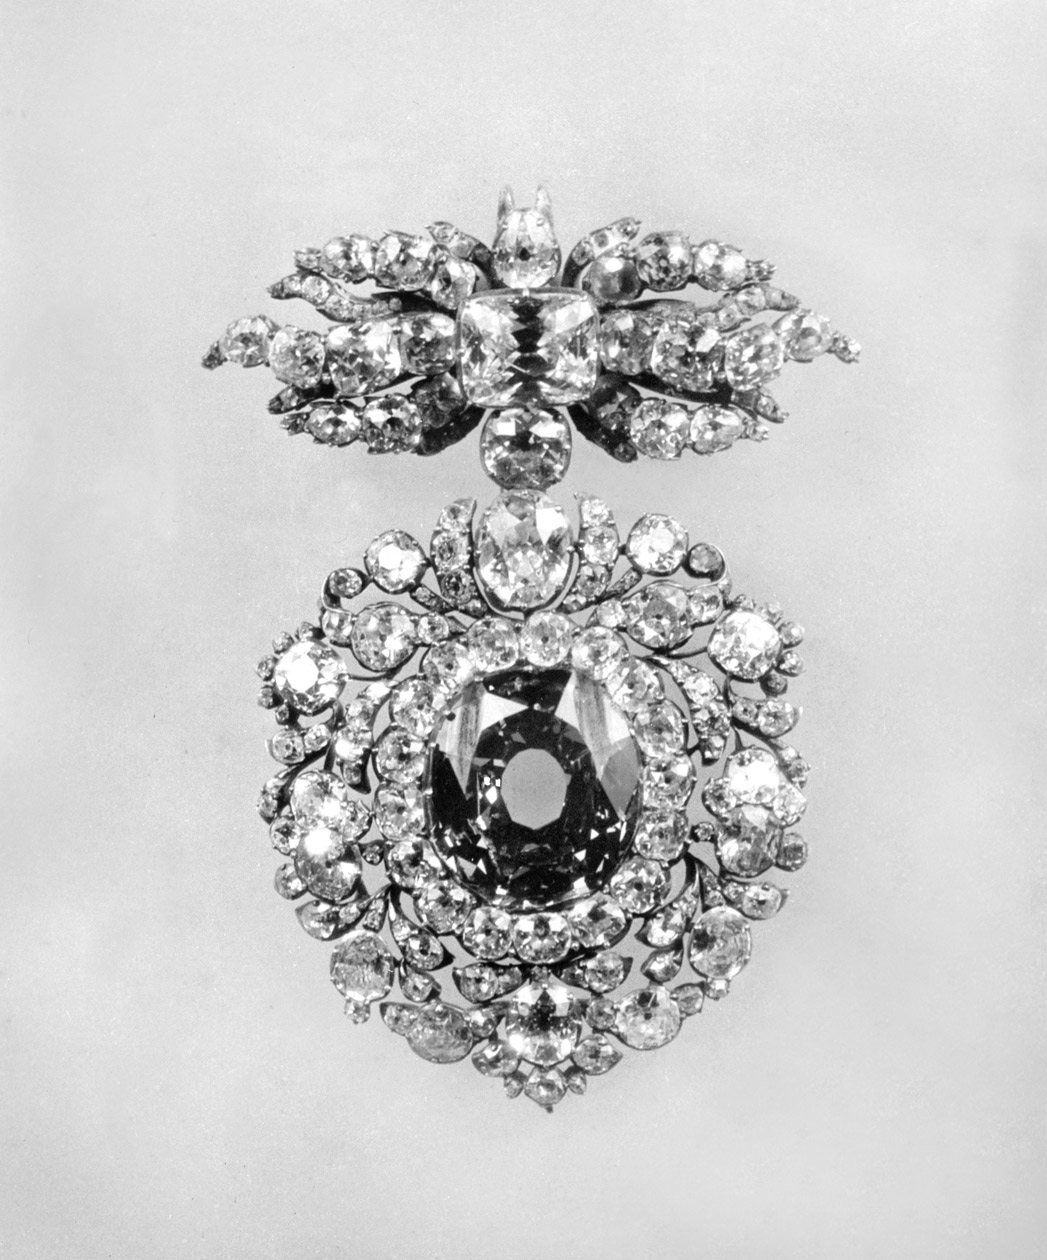 The famous Wittelsbach Blue Diamond, brought into the Wittelsbach family by Maria Amelia of Austria on her marriage to Charles Albert Duke of Bavaria in 1722 and part of the collection of the Bavarian Royal Jewels, 1931.